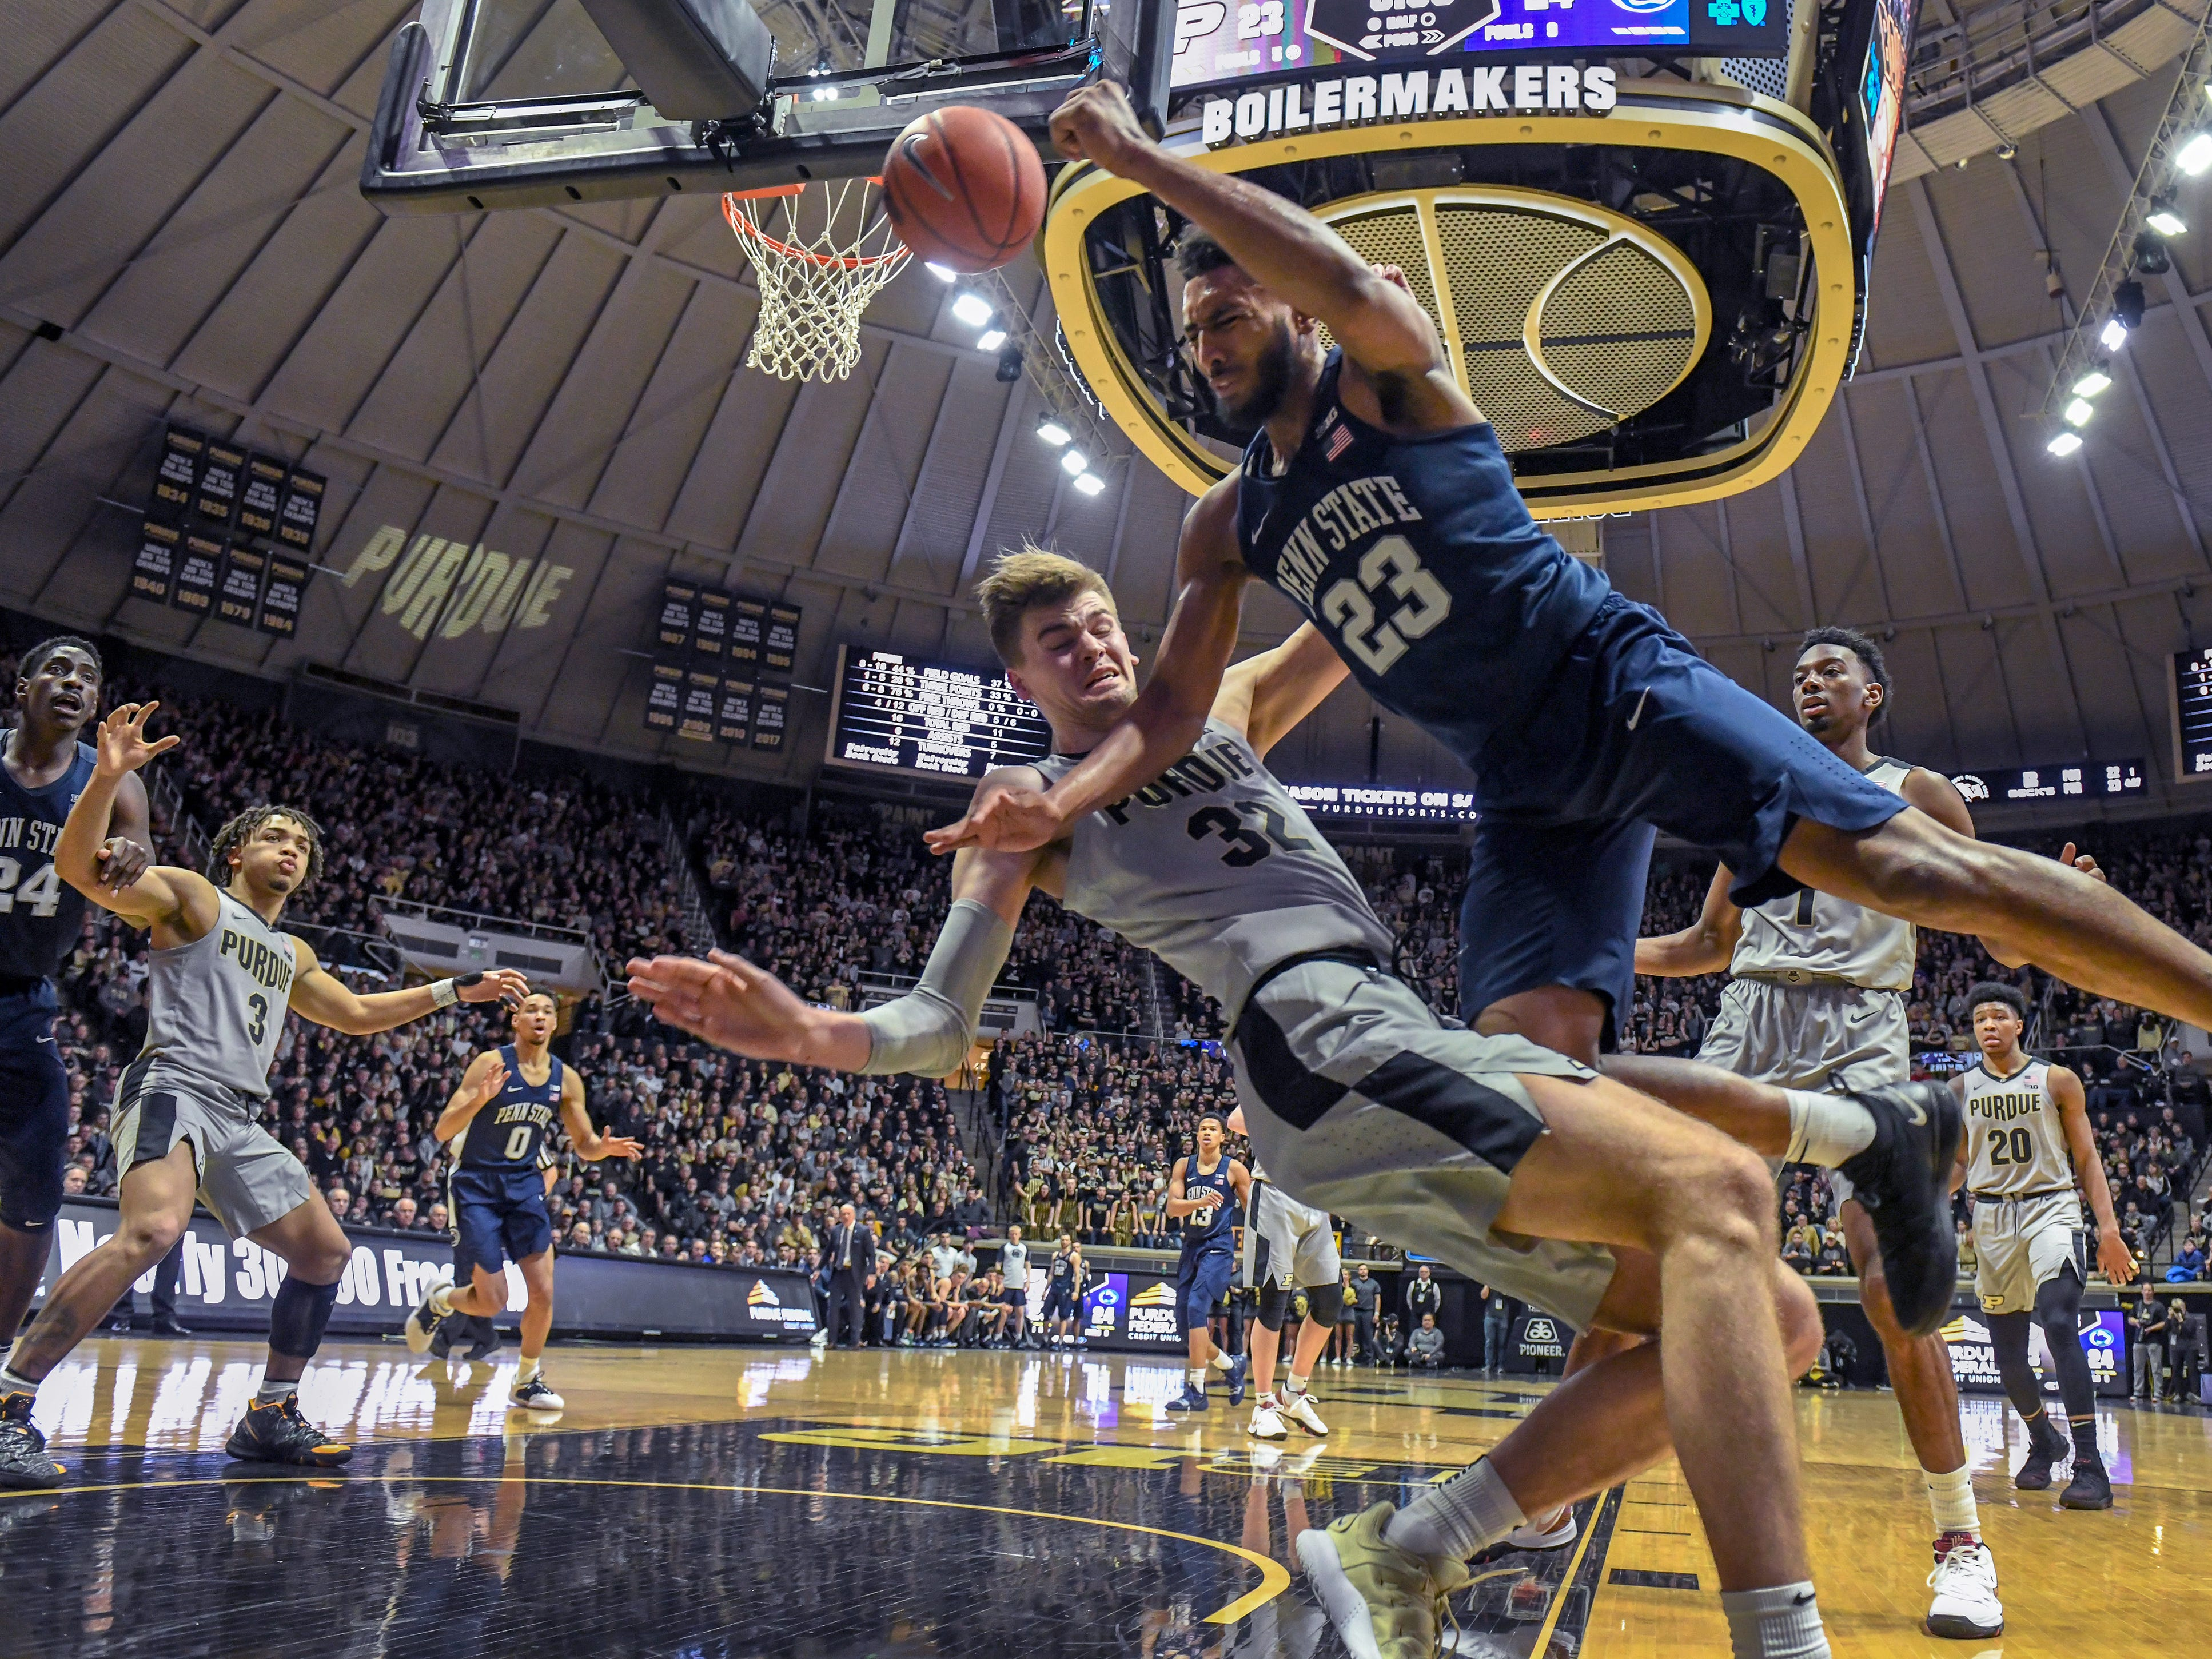 By Frank Oliver for the Journal and Courier -- Purdue's Matt Haarms takes a charge as Penn State's Josh Reaves drives the baseline in the first half at Purdue on Saturday February 16, 2019.